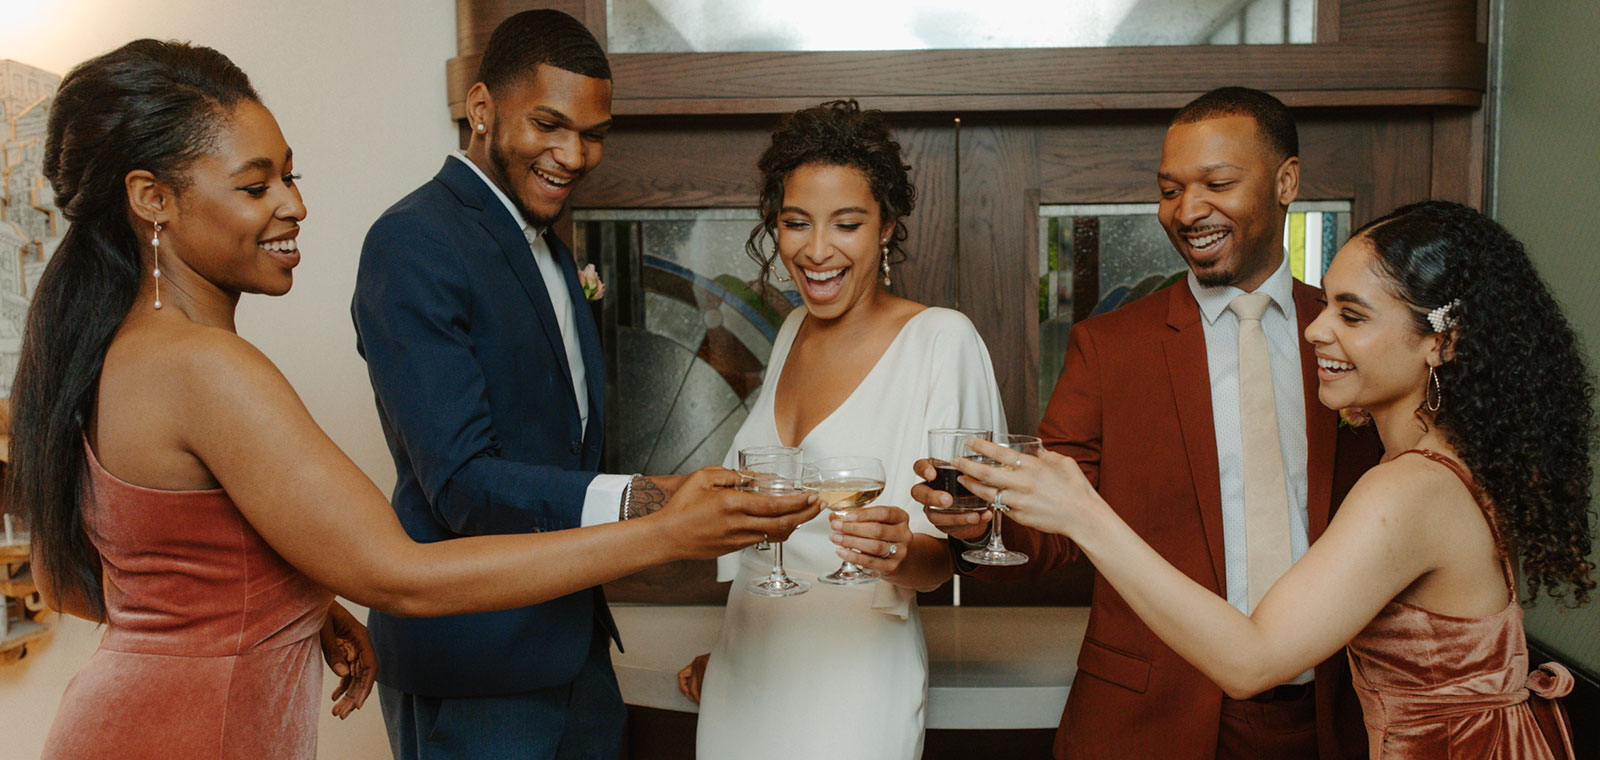 Bride and Groom Toasting with Wedding Party